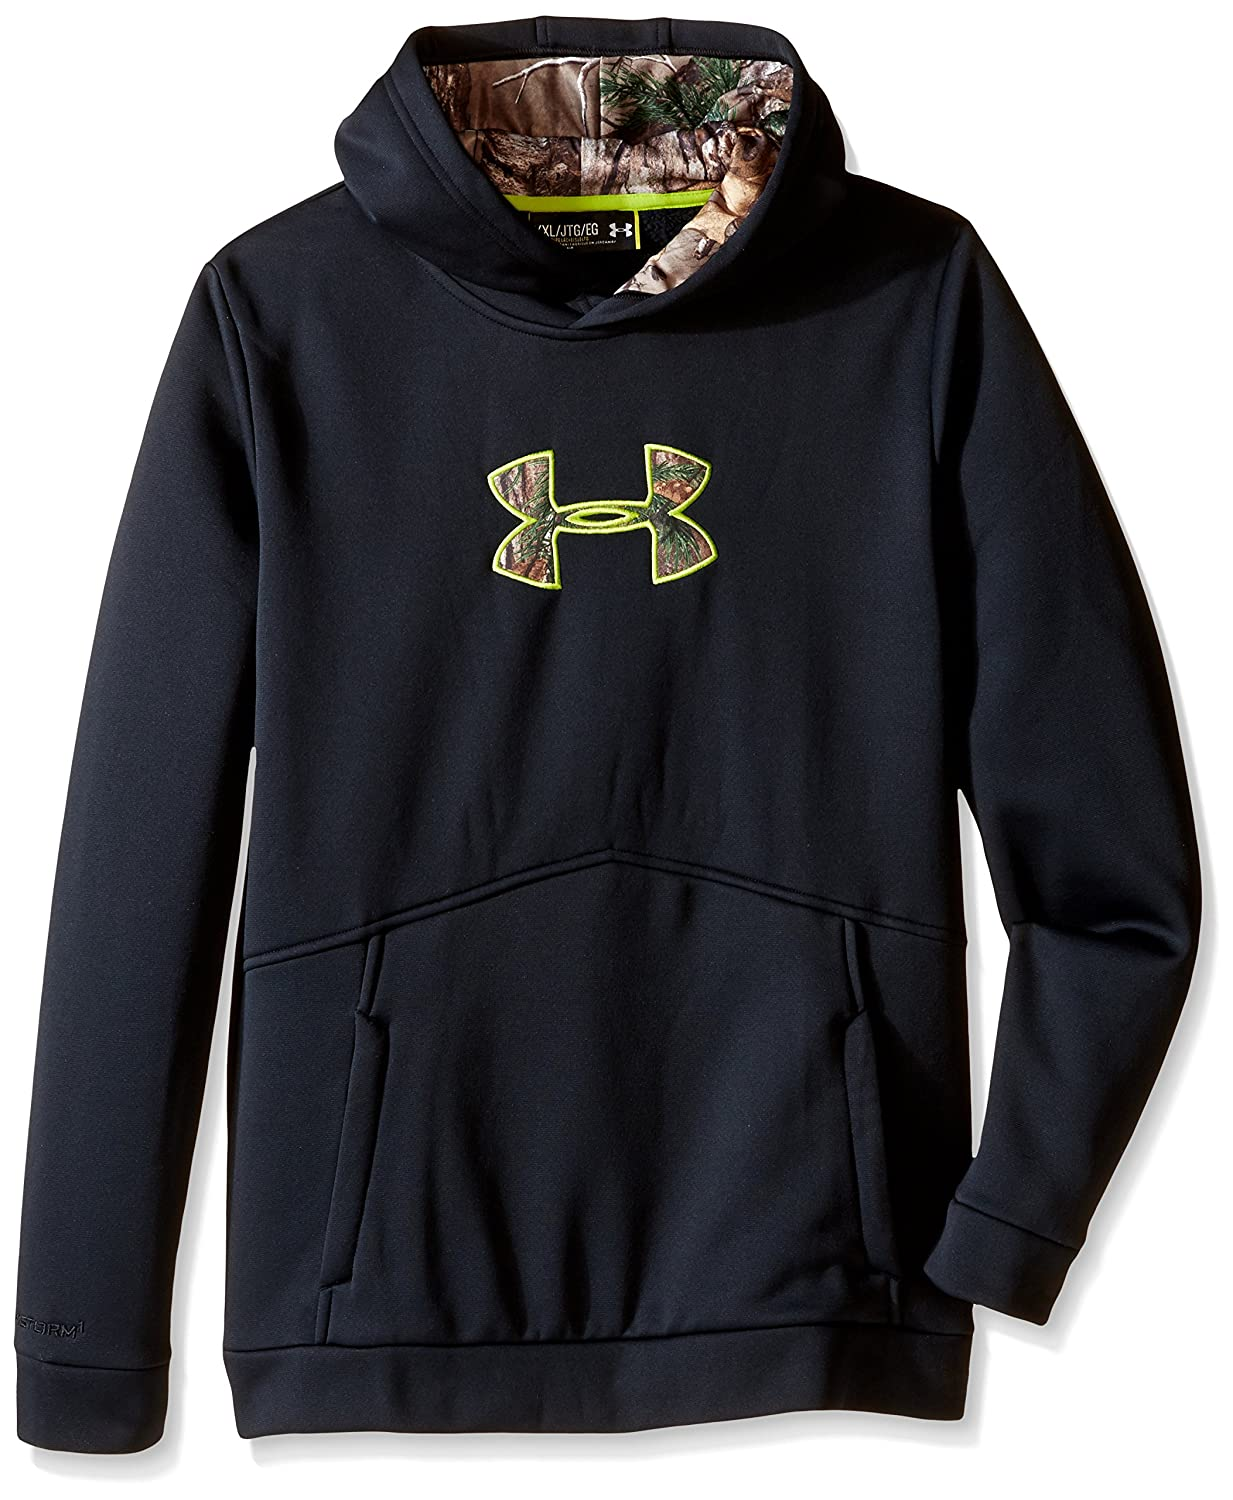 Under Armour Boys' Icon Caliber Hoodie Under Armour Apparel 1286129